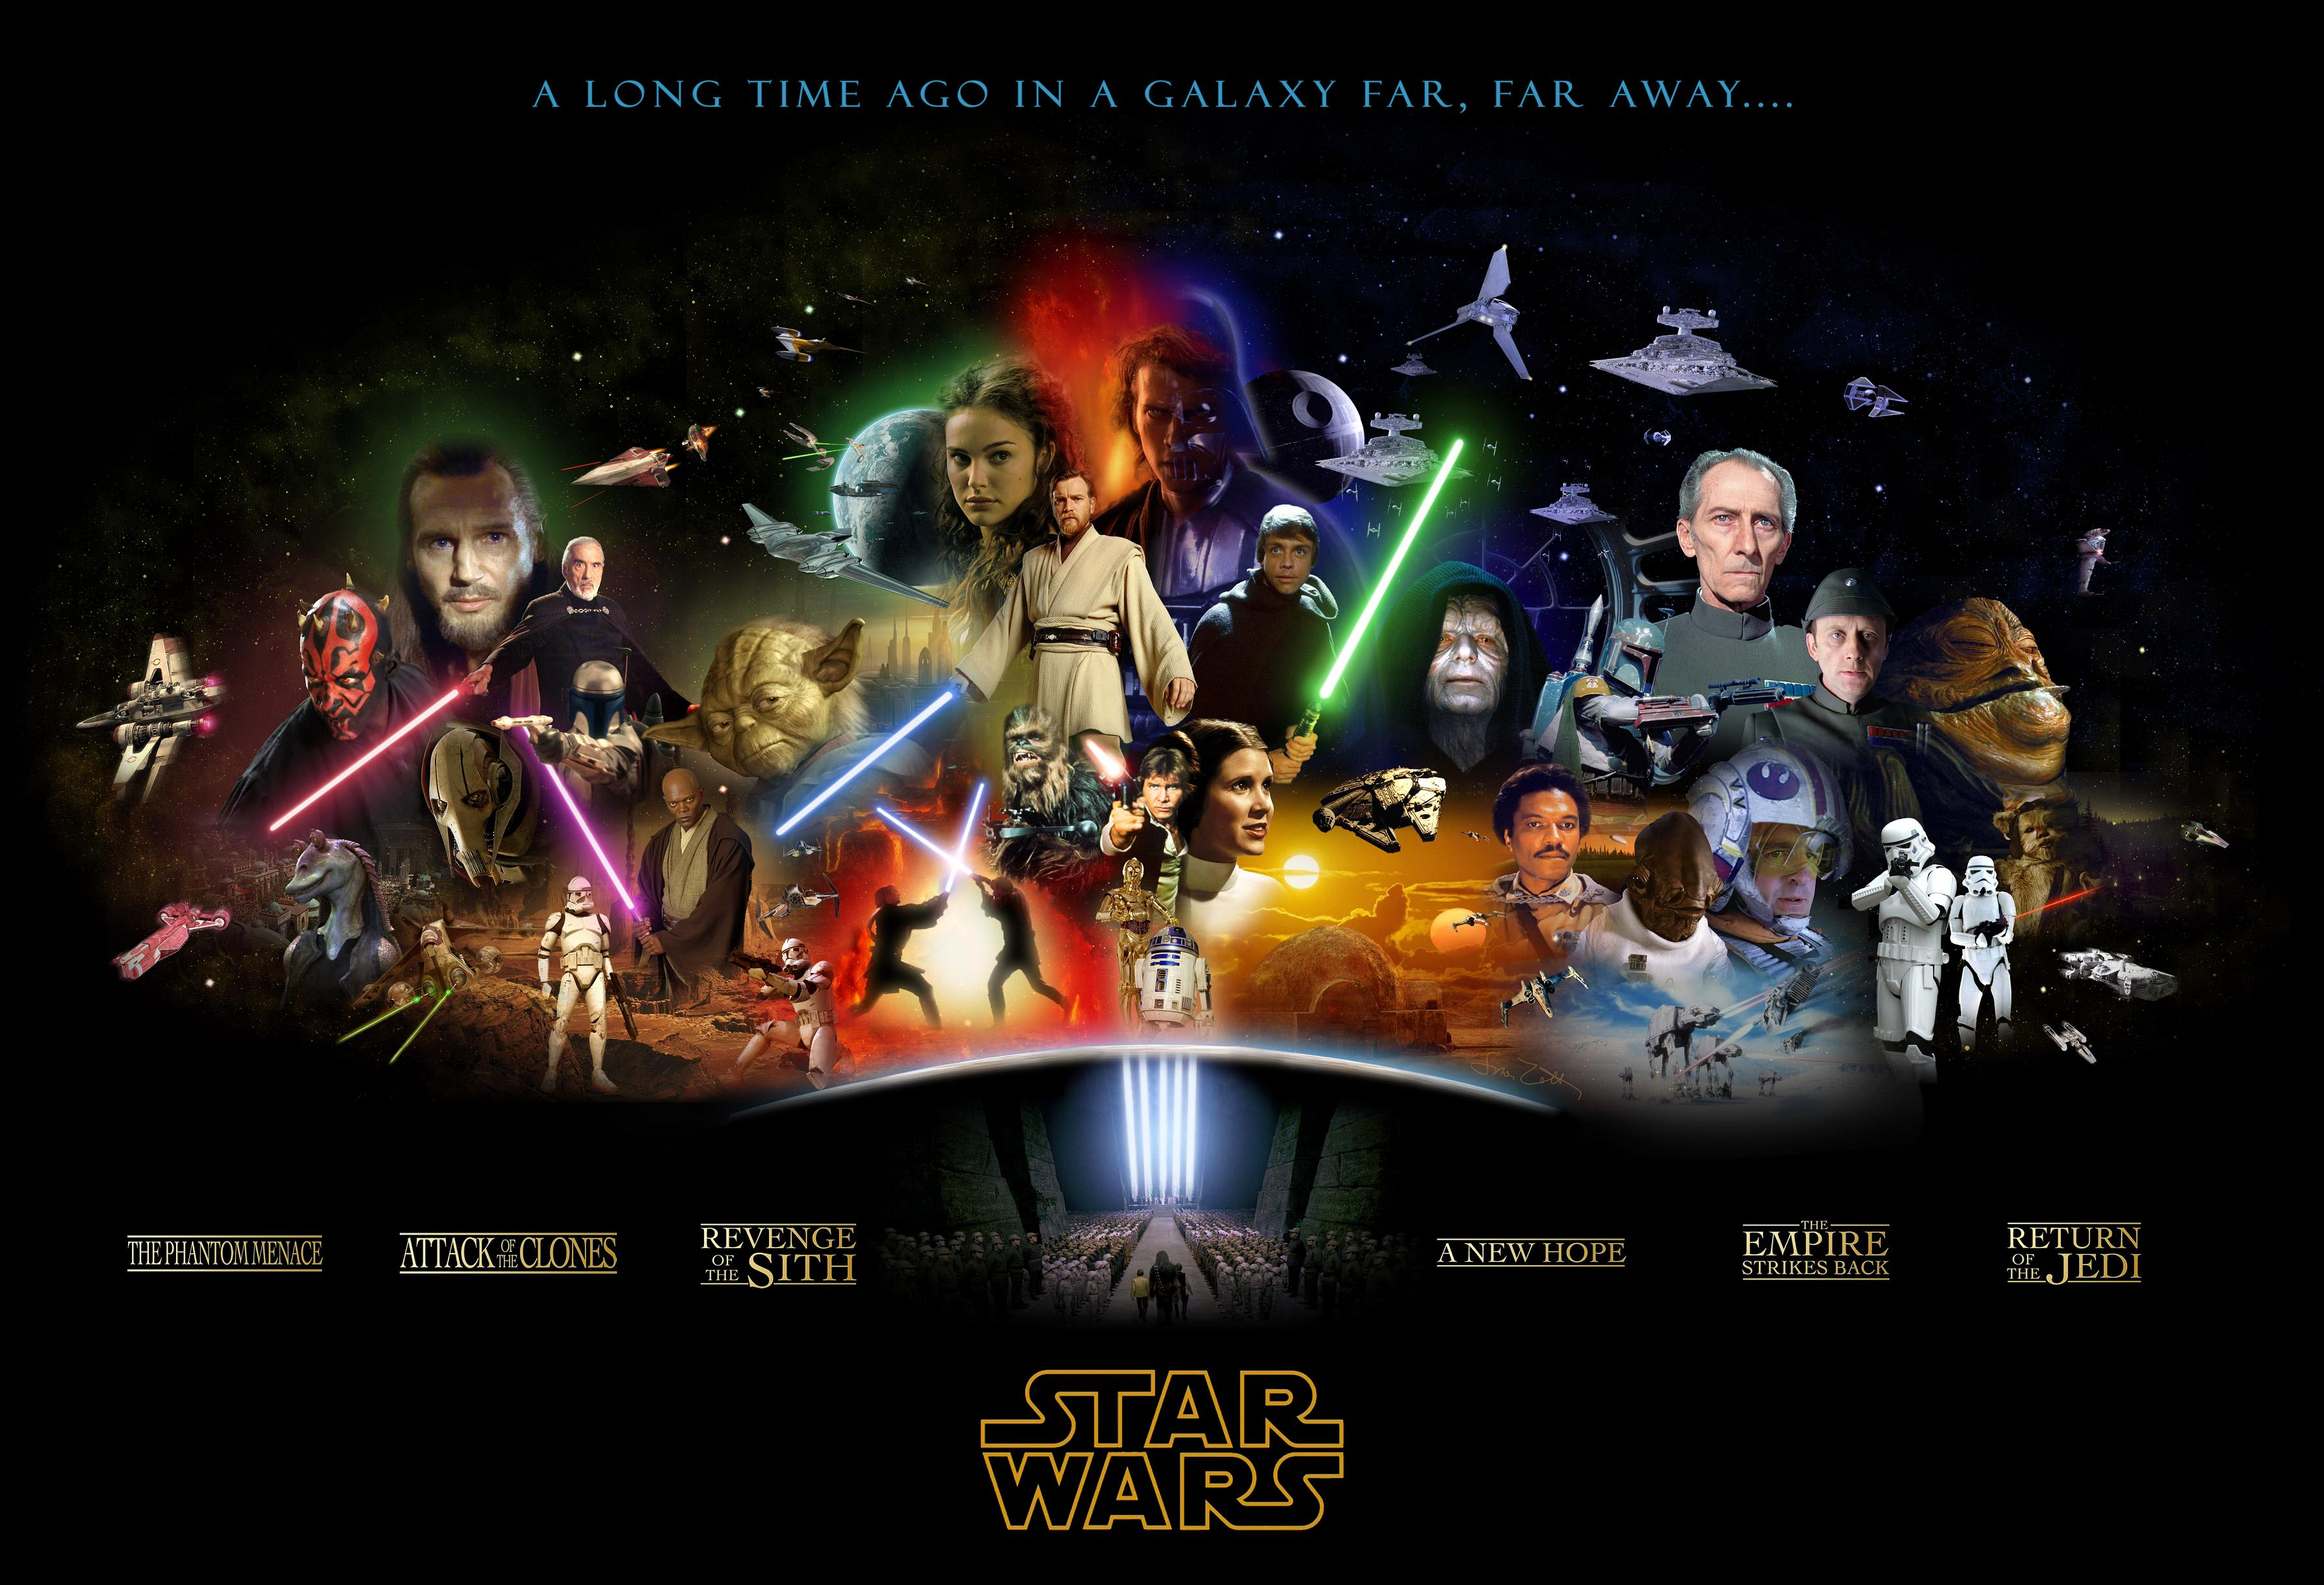 My Personal Ranking Of Star Wars Movies